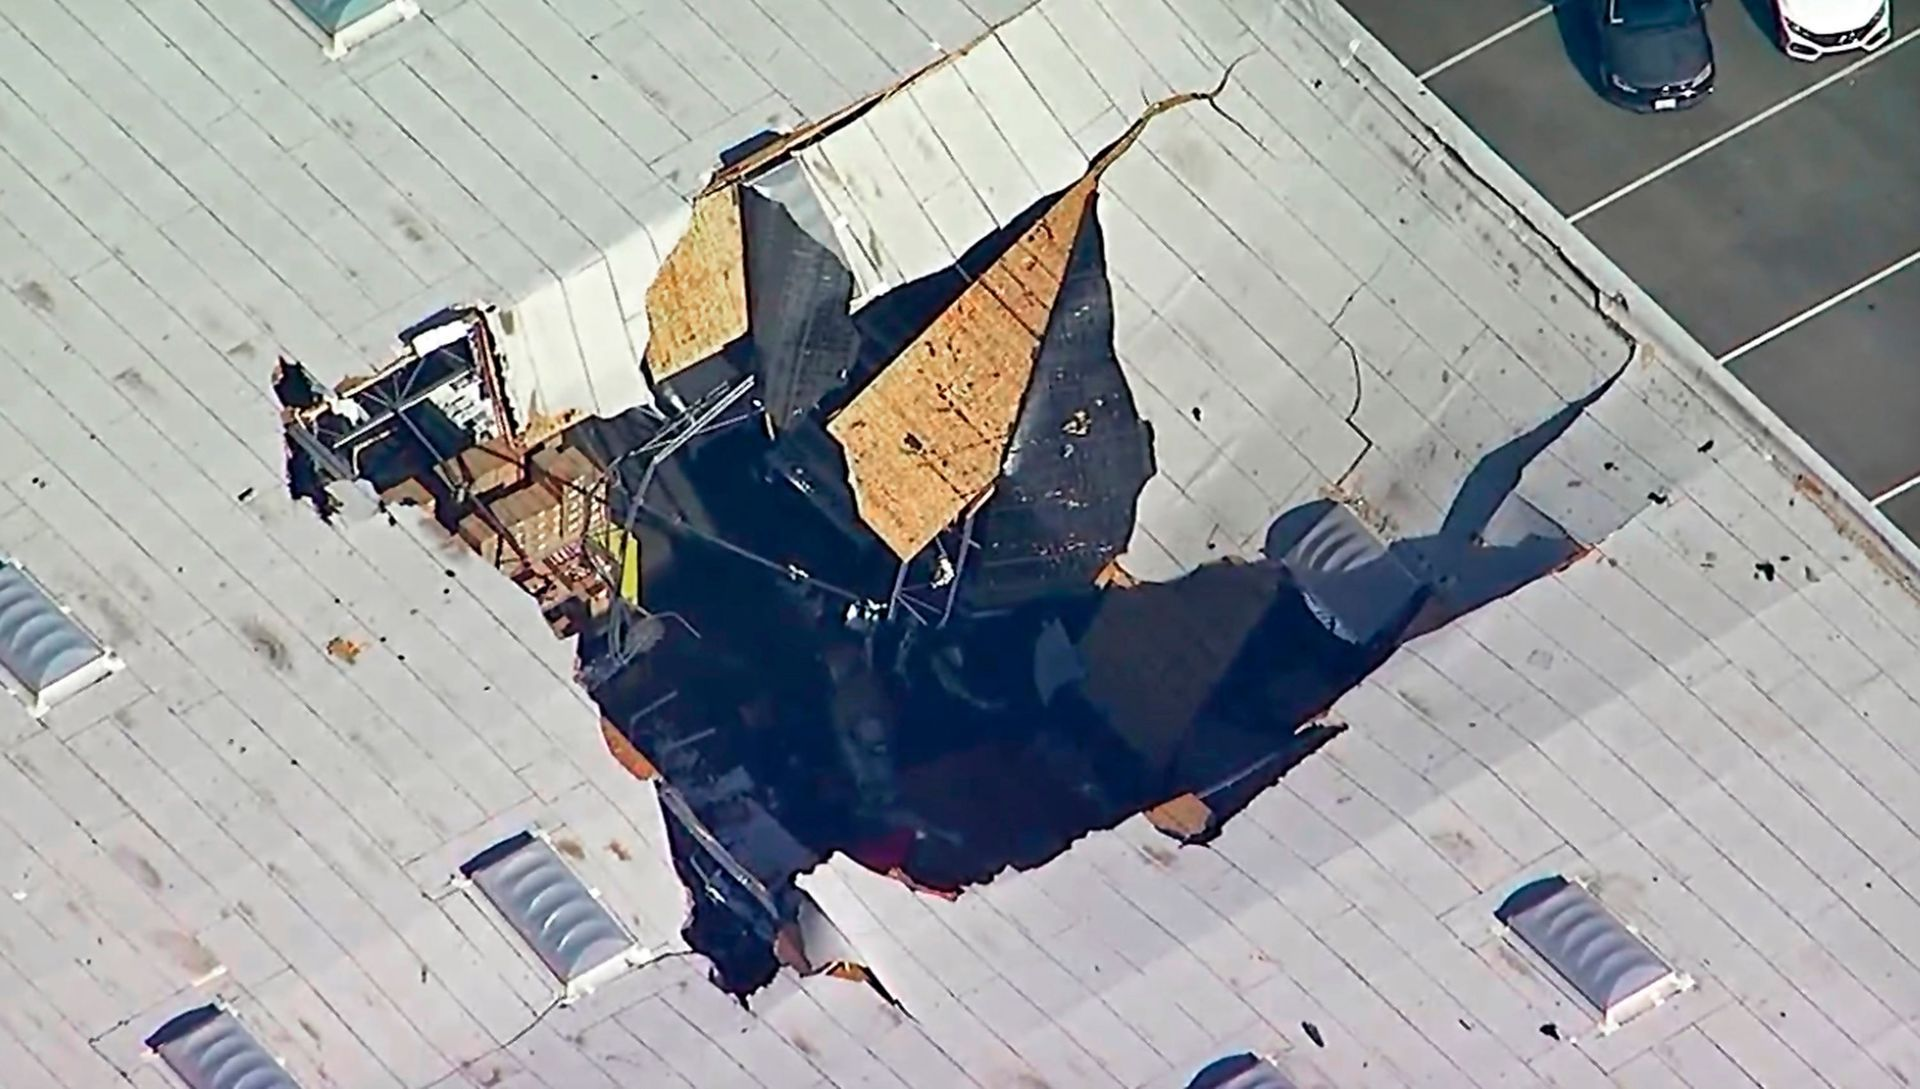 An F-16 Fighter Jet Crashed into a California Warehouse